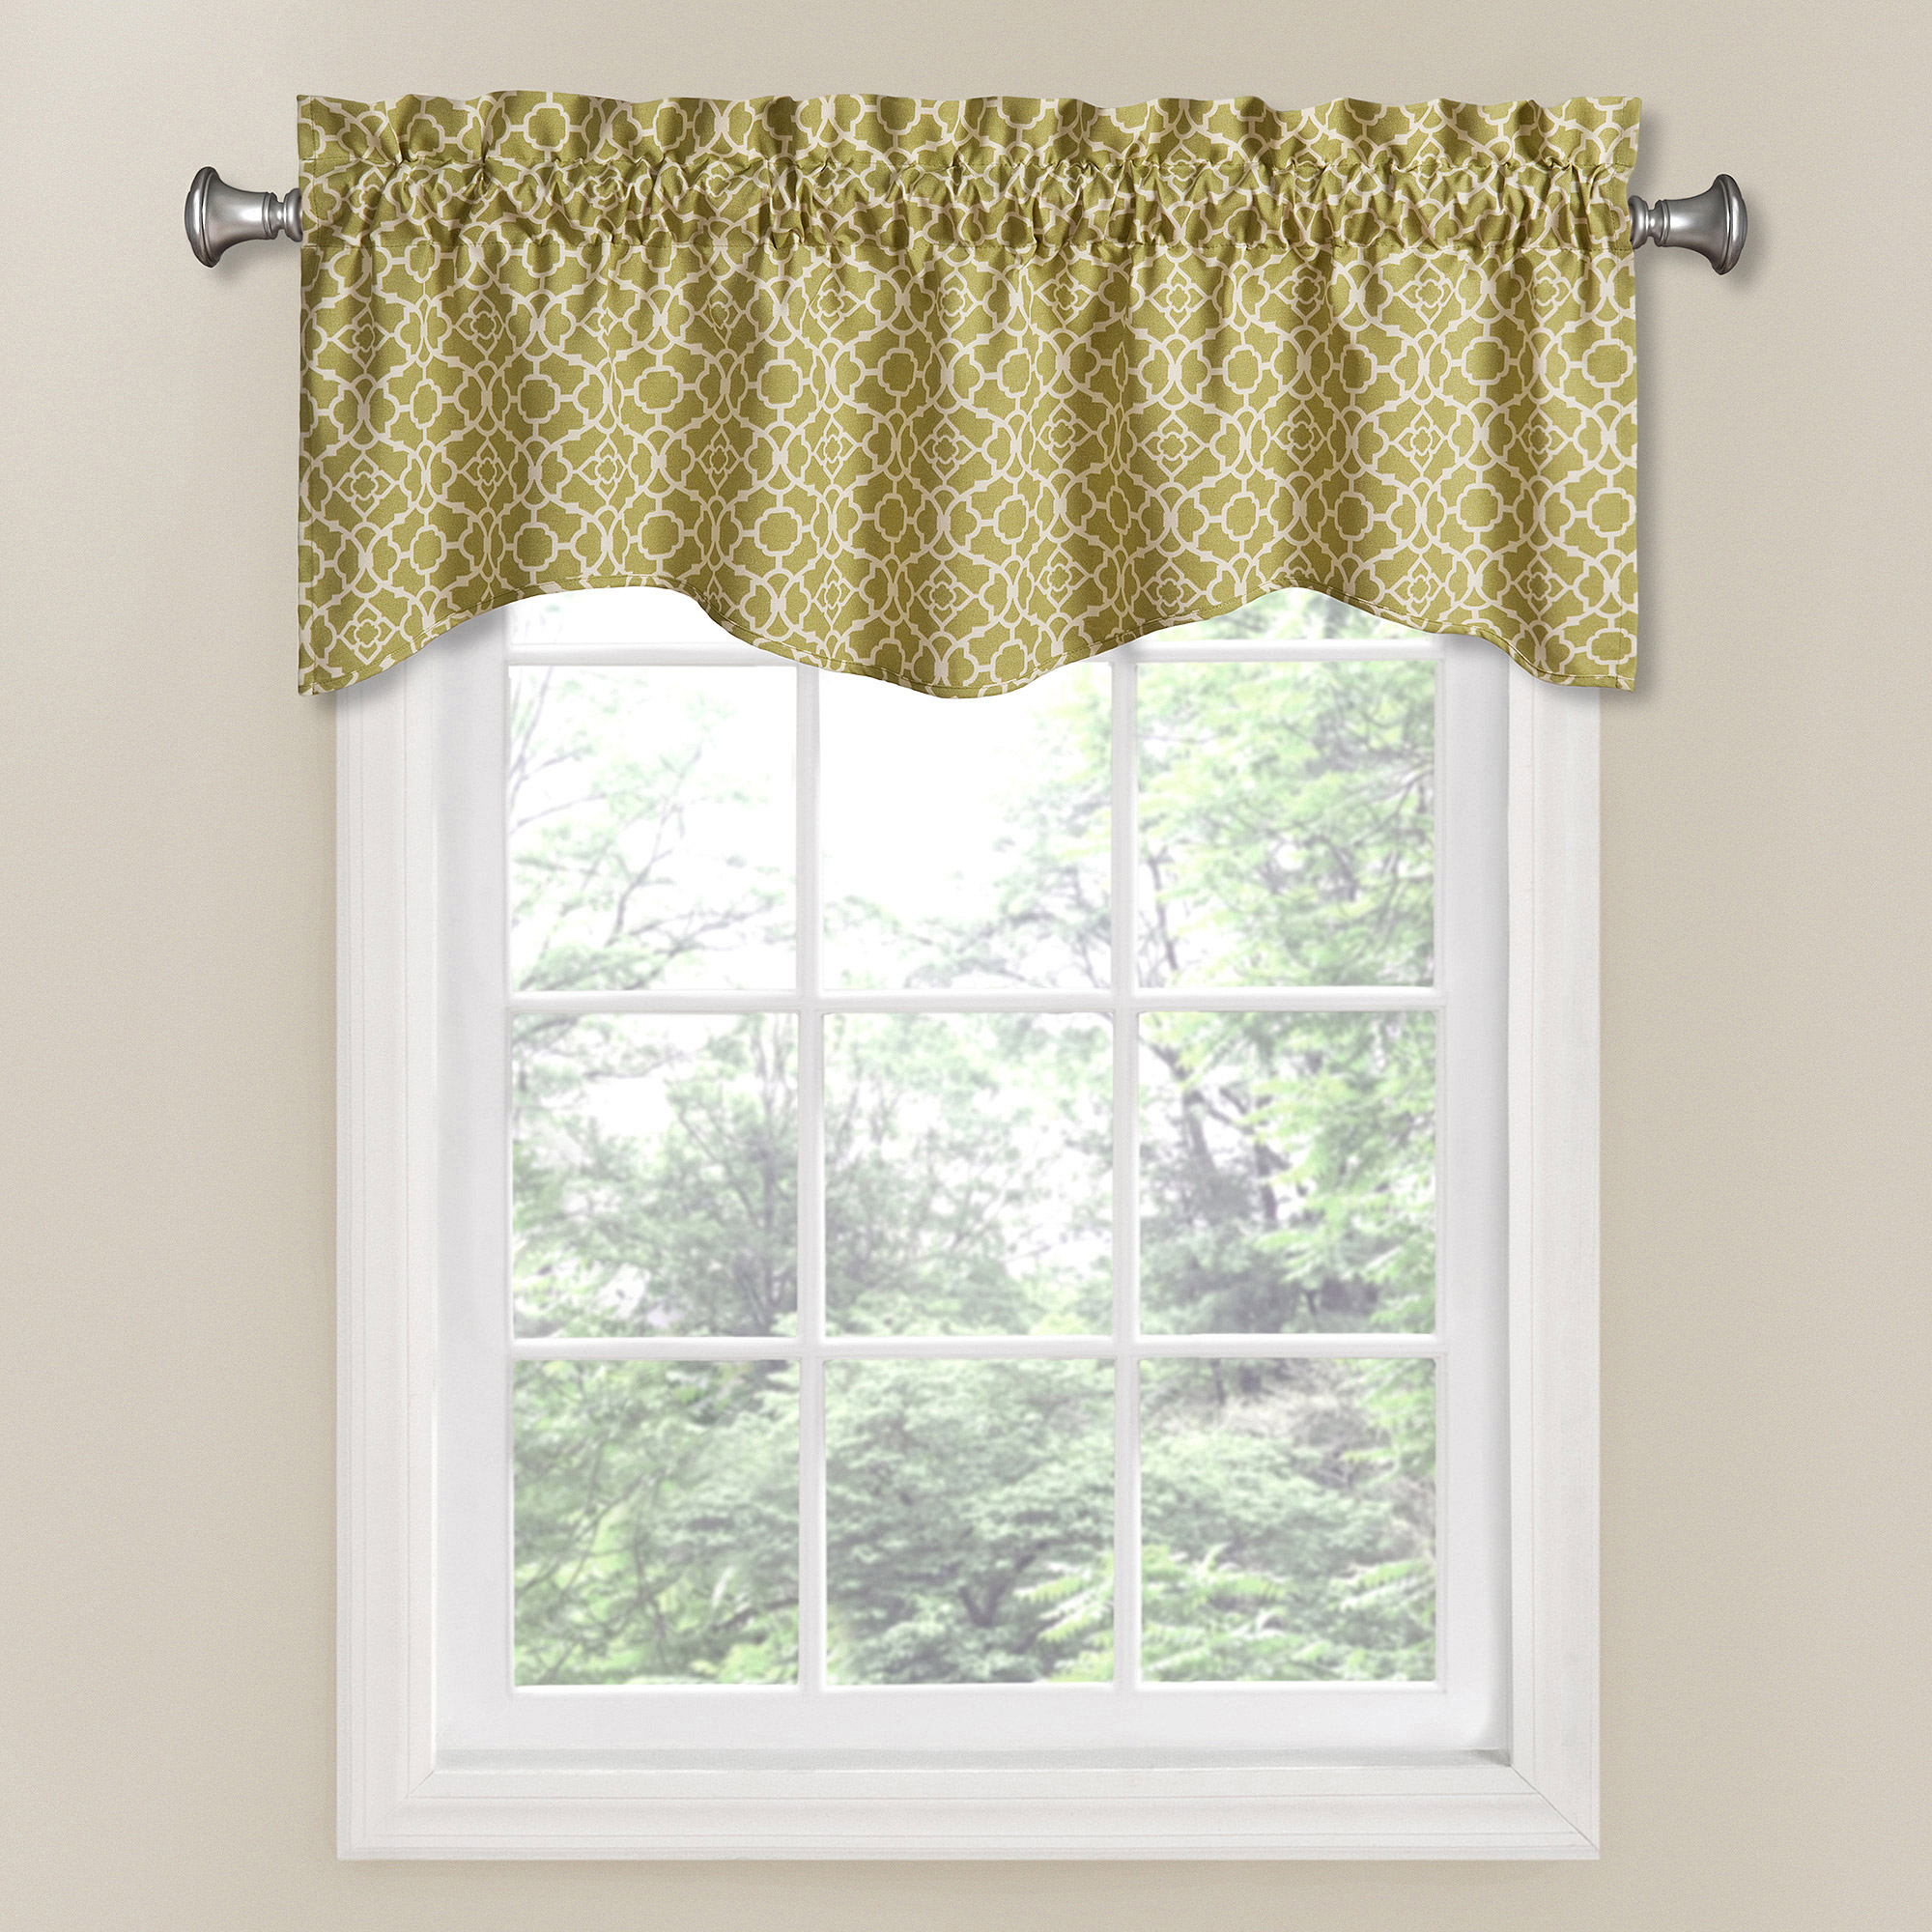 teal blackout itm pelmet sheer curtains curtain swag panel drapes swags eyelet blue valance with beaded blockout